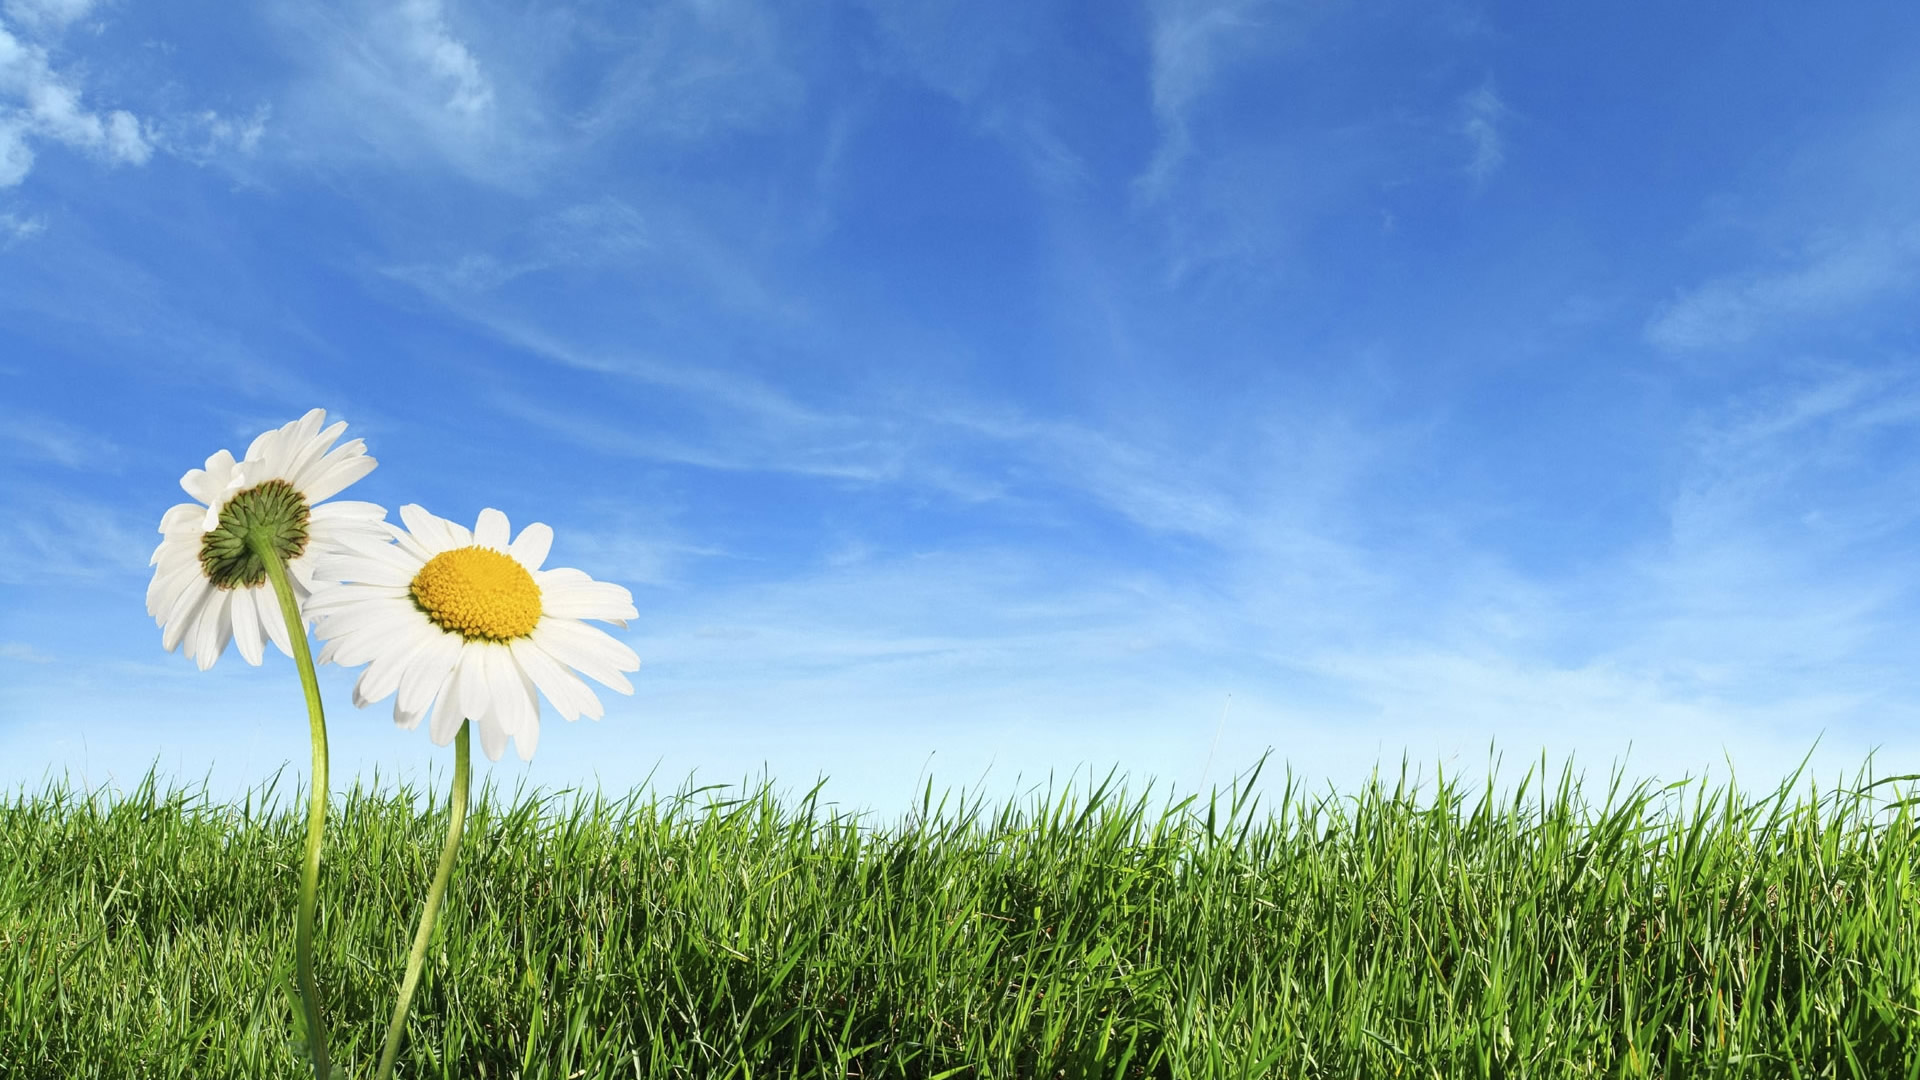 free spring screensavers for desktop which is under the spring 1920x1080